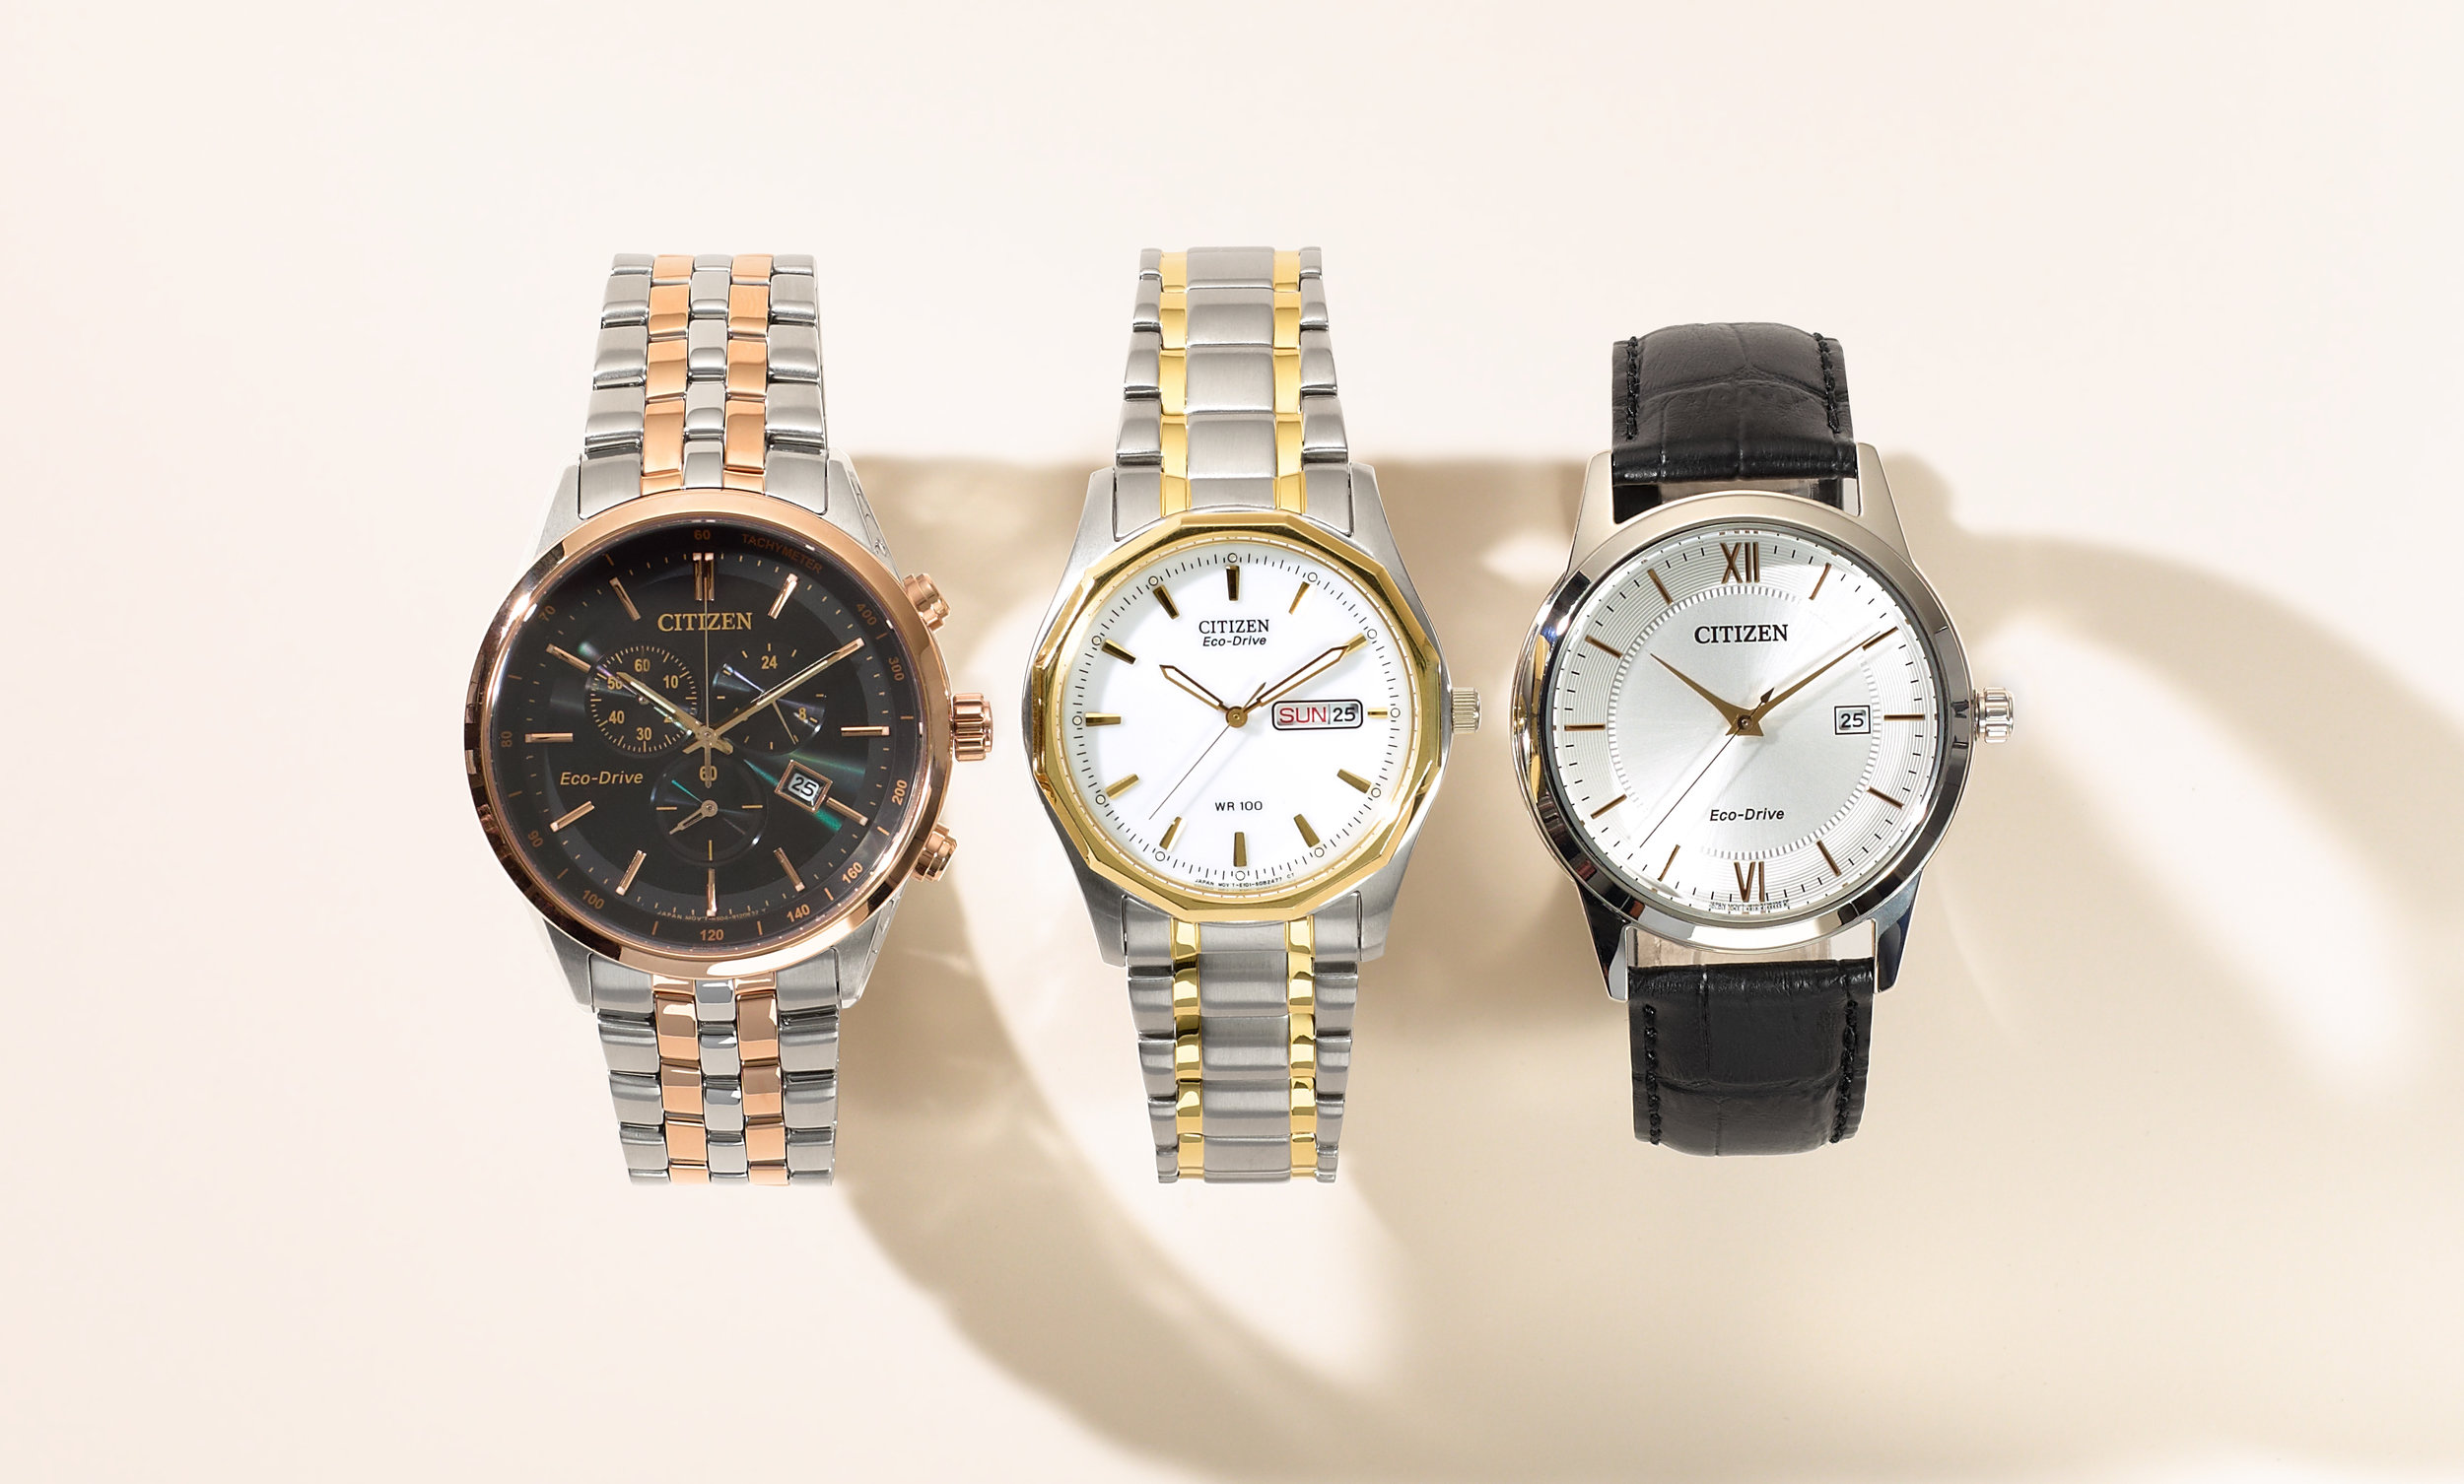 0610_0670_HOL2-NYNY_W_M_WATCHES_BB_GW_MOBILE_CLASSICVDAYGIFTWATCH_crp copy.jpg